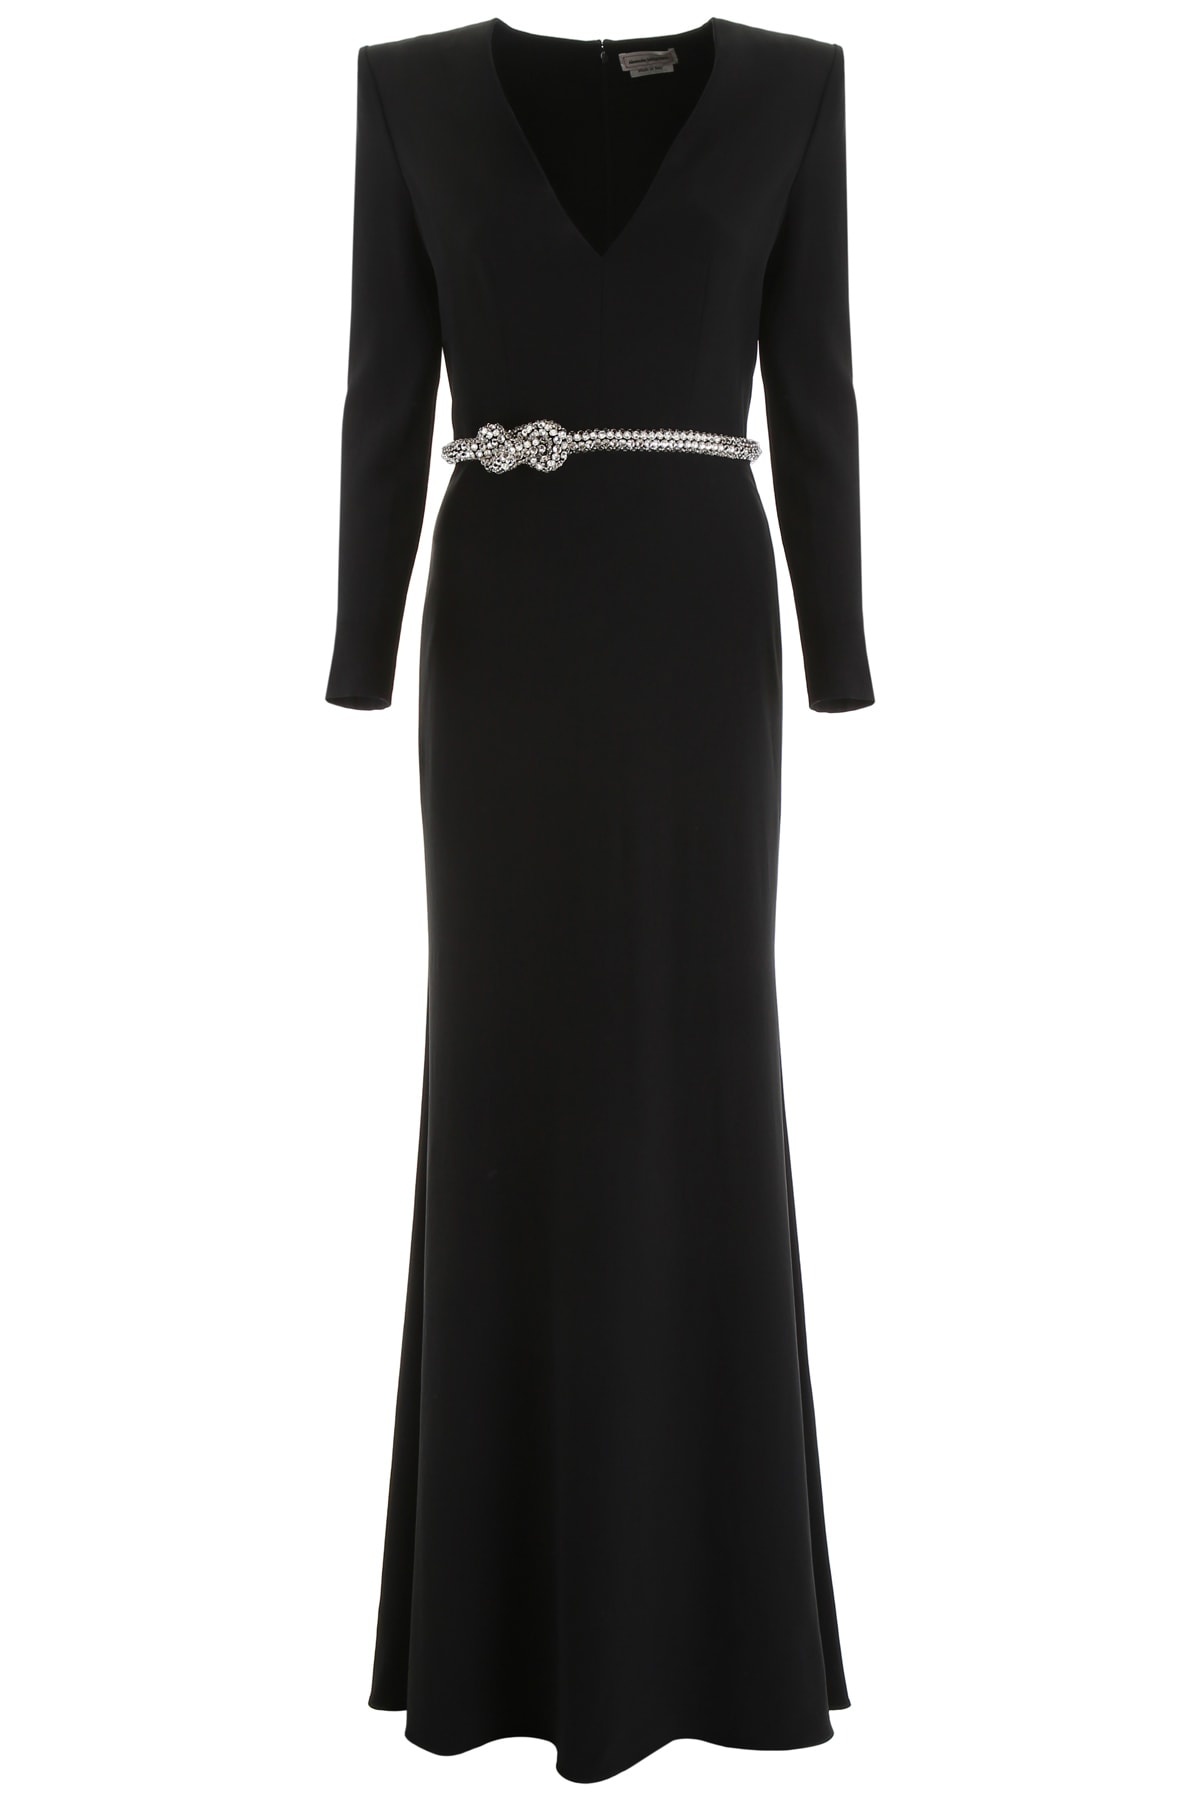 Alexander McQueen Crystal Knot Long Dress